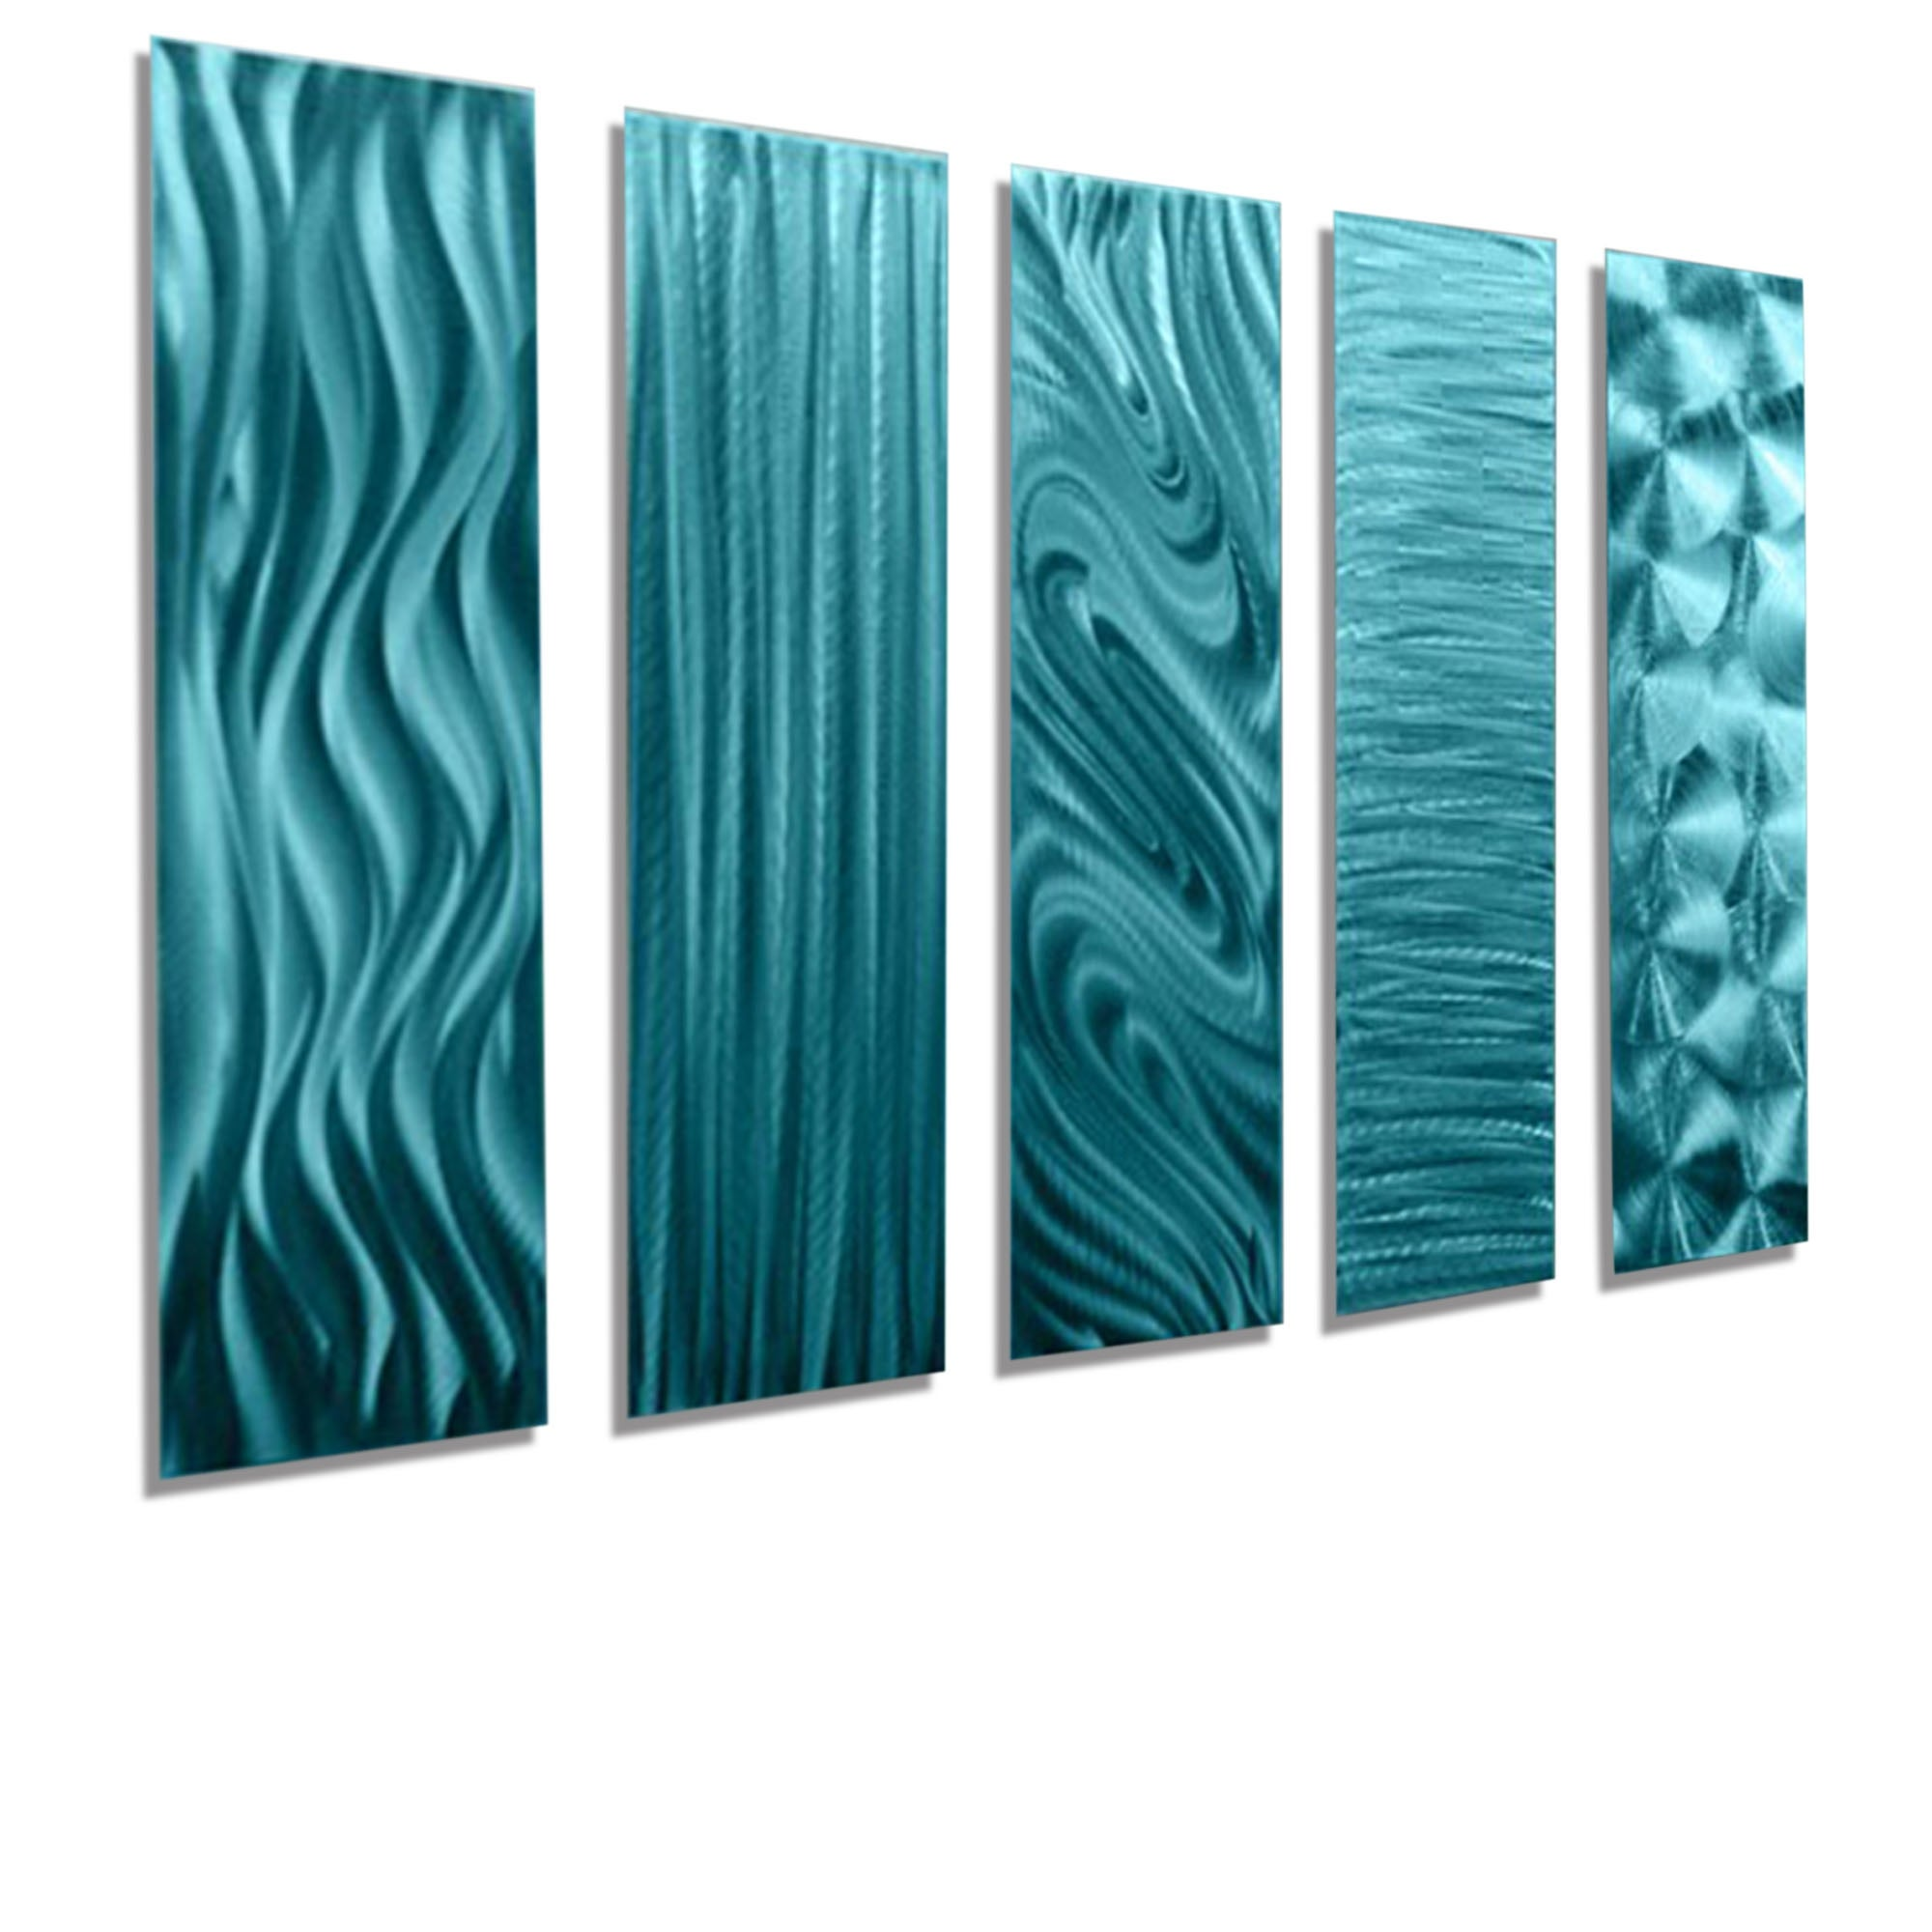 Blue Metal Wall Art Custom Statements2000 Set Of 5 Aqua Blue Metal Wall Art Accentsjon Design Inspiration